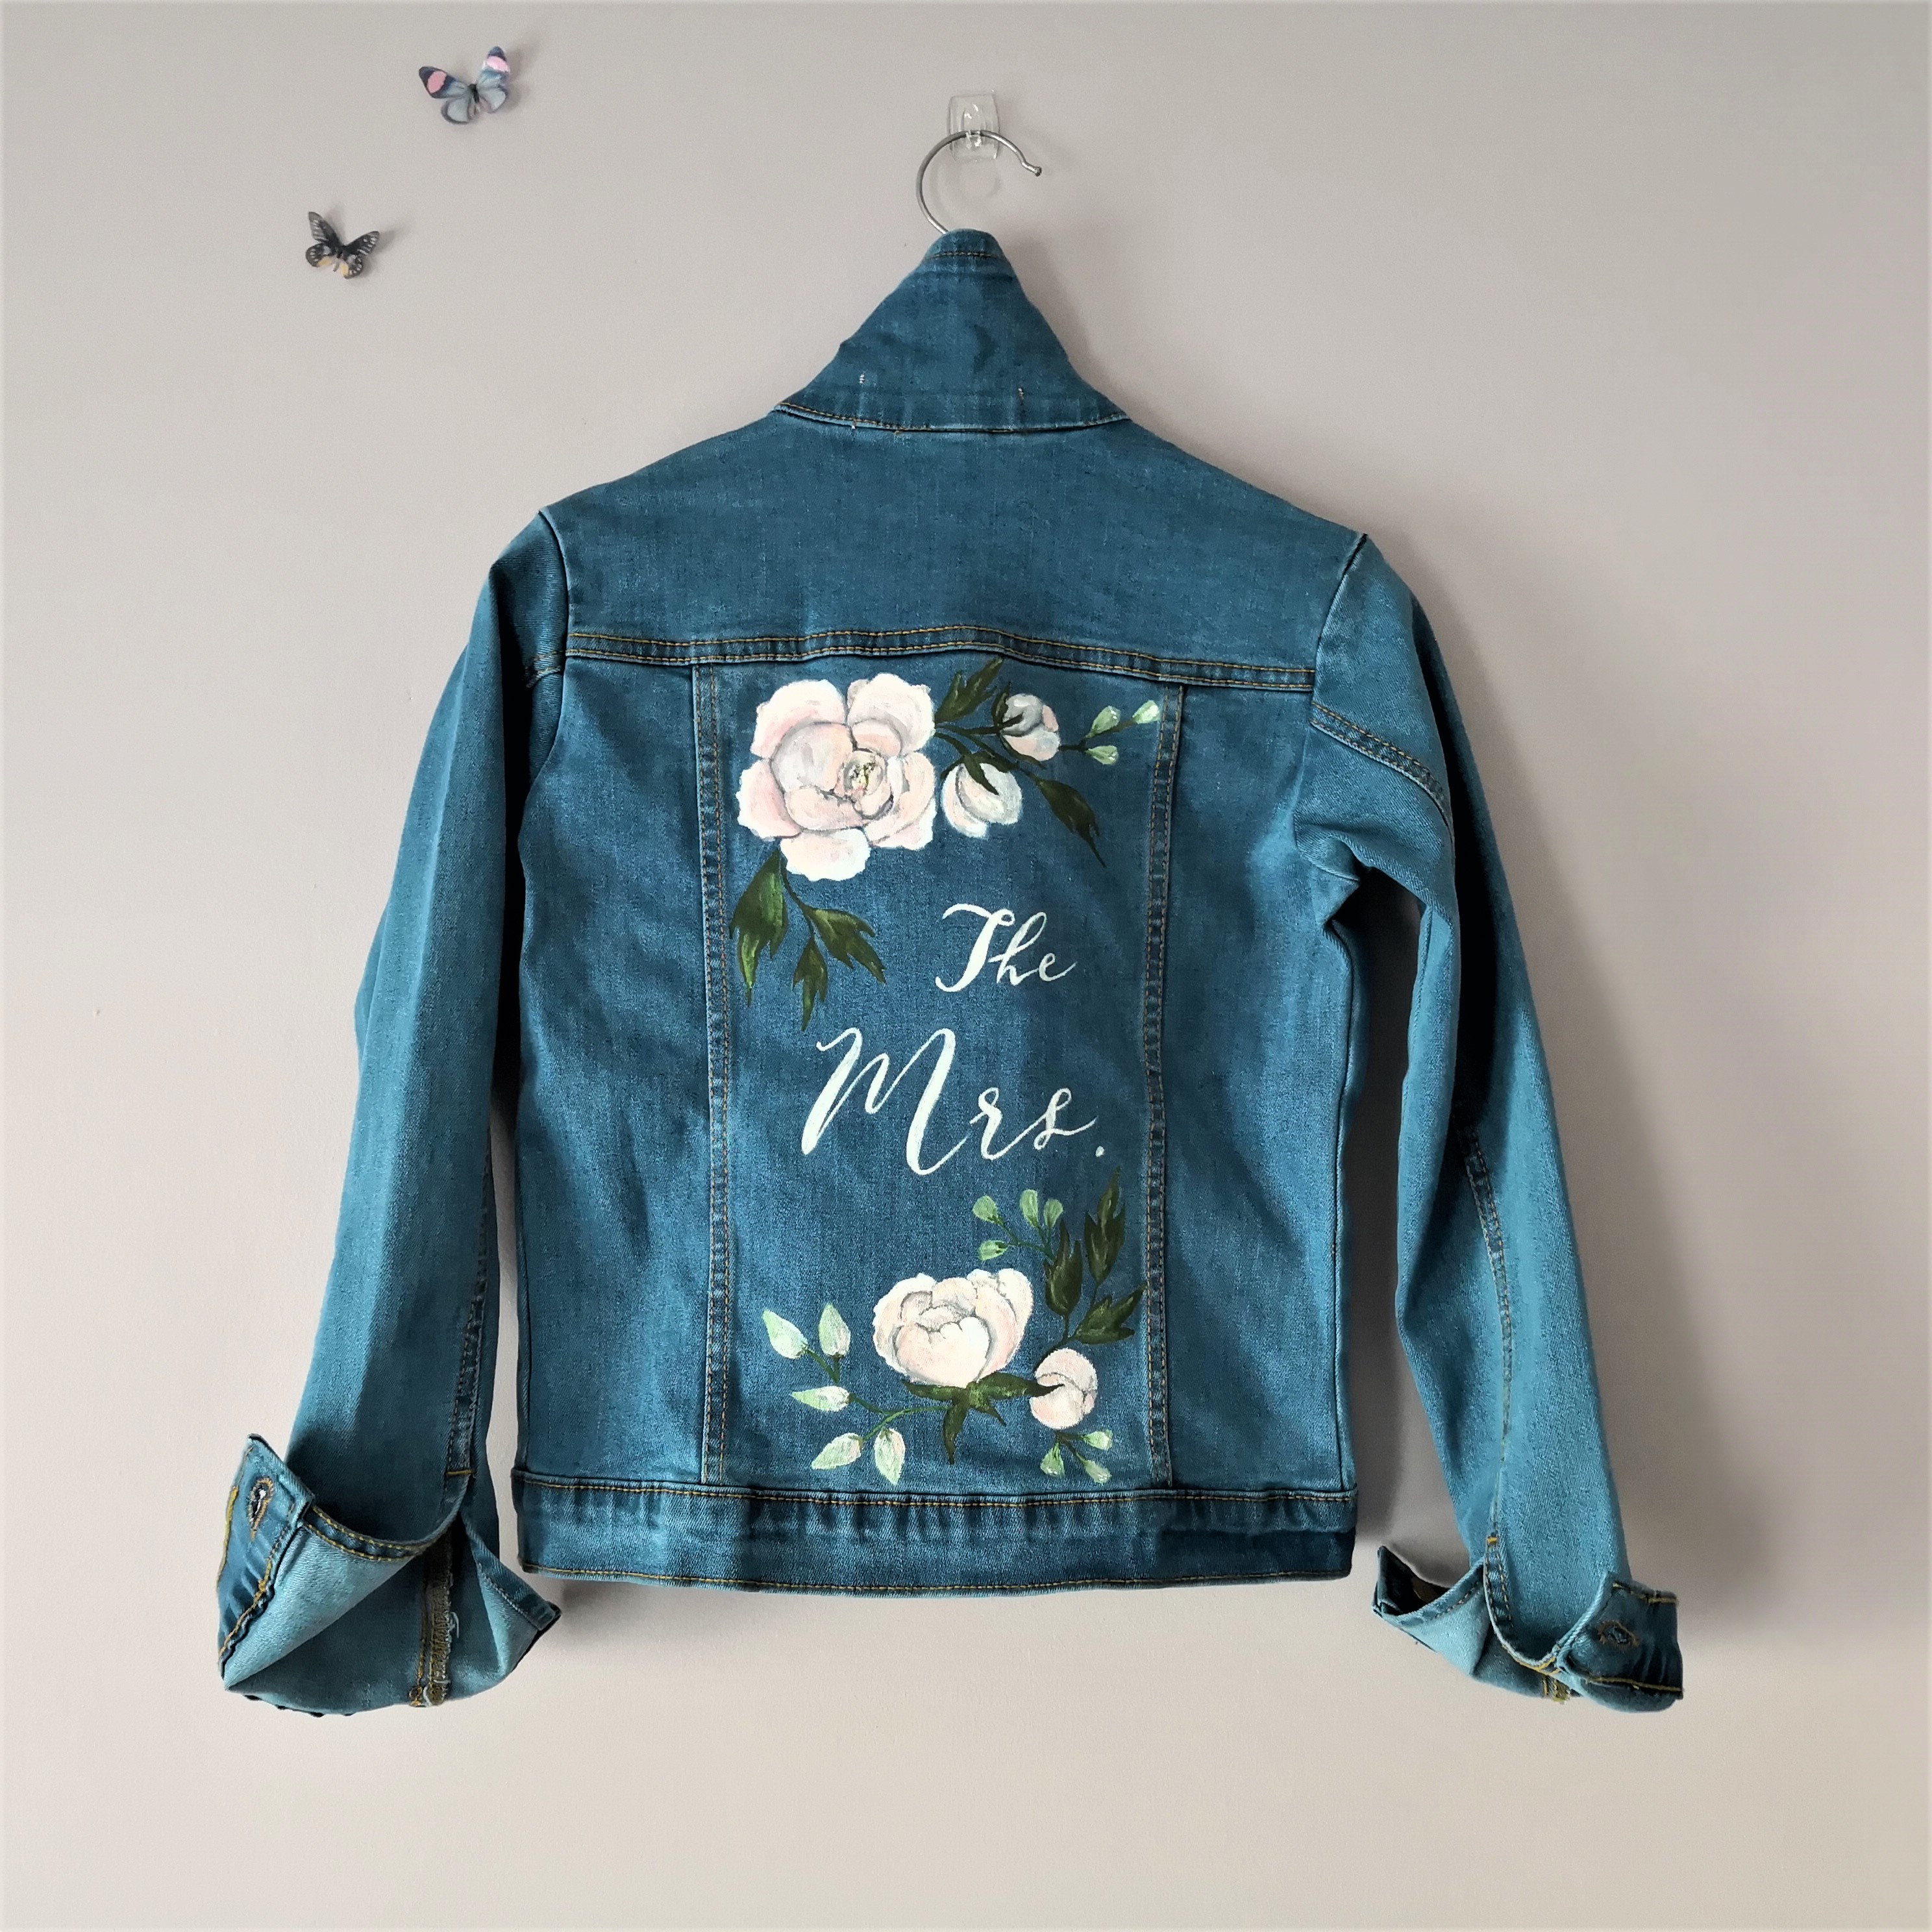 ccaf4e60a Hand Painted Custom Peony Design Wedding The Mrs. Jacket, Painted Denim  Bridal Jacket, Bridesmaid, Bespoke Denim or Leather Jacket Calligraphy, UK.